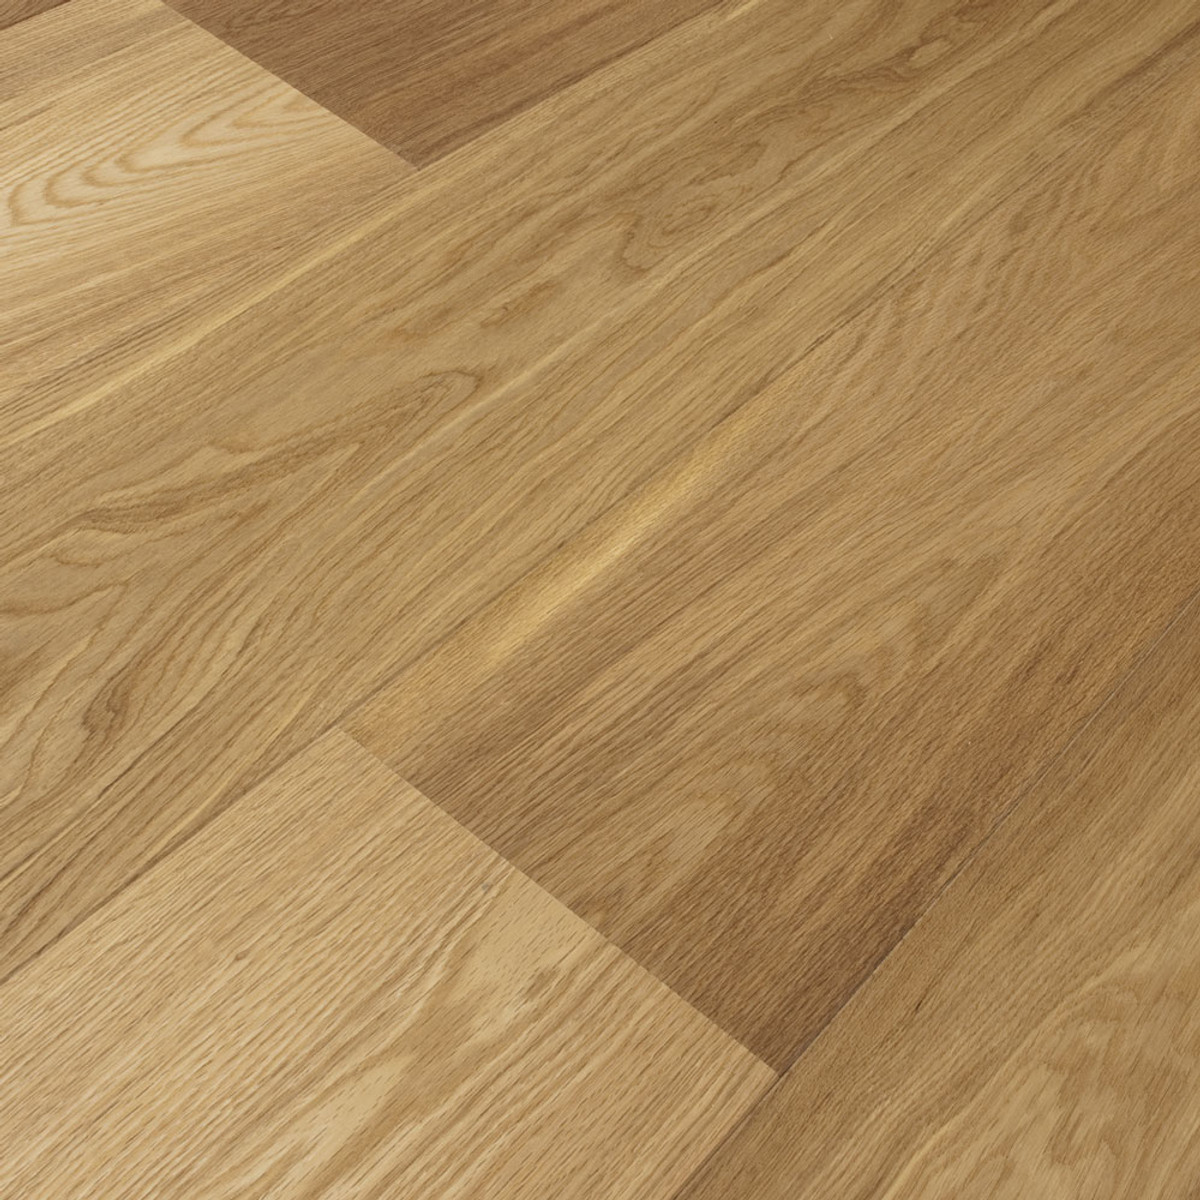 Tuscany Vermont_Oak_Brushed_&_Oiled Engineered Wood Flooring  order instore or online today @ www.tuscanytiles.co.uk